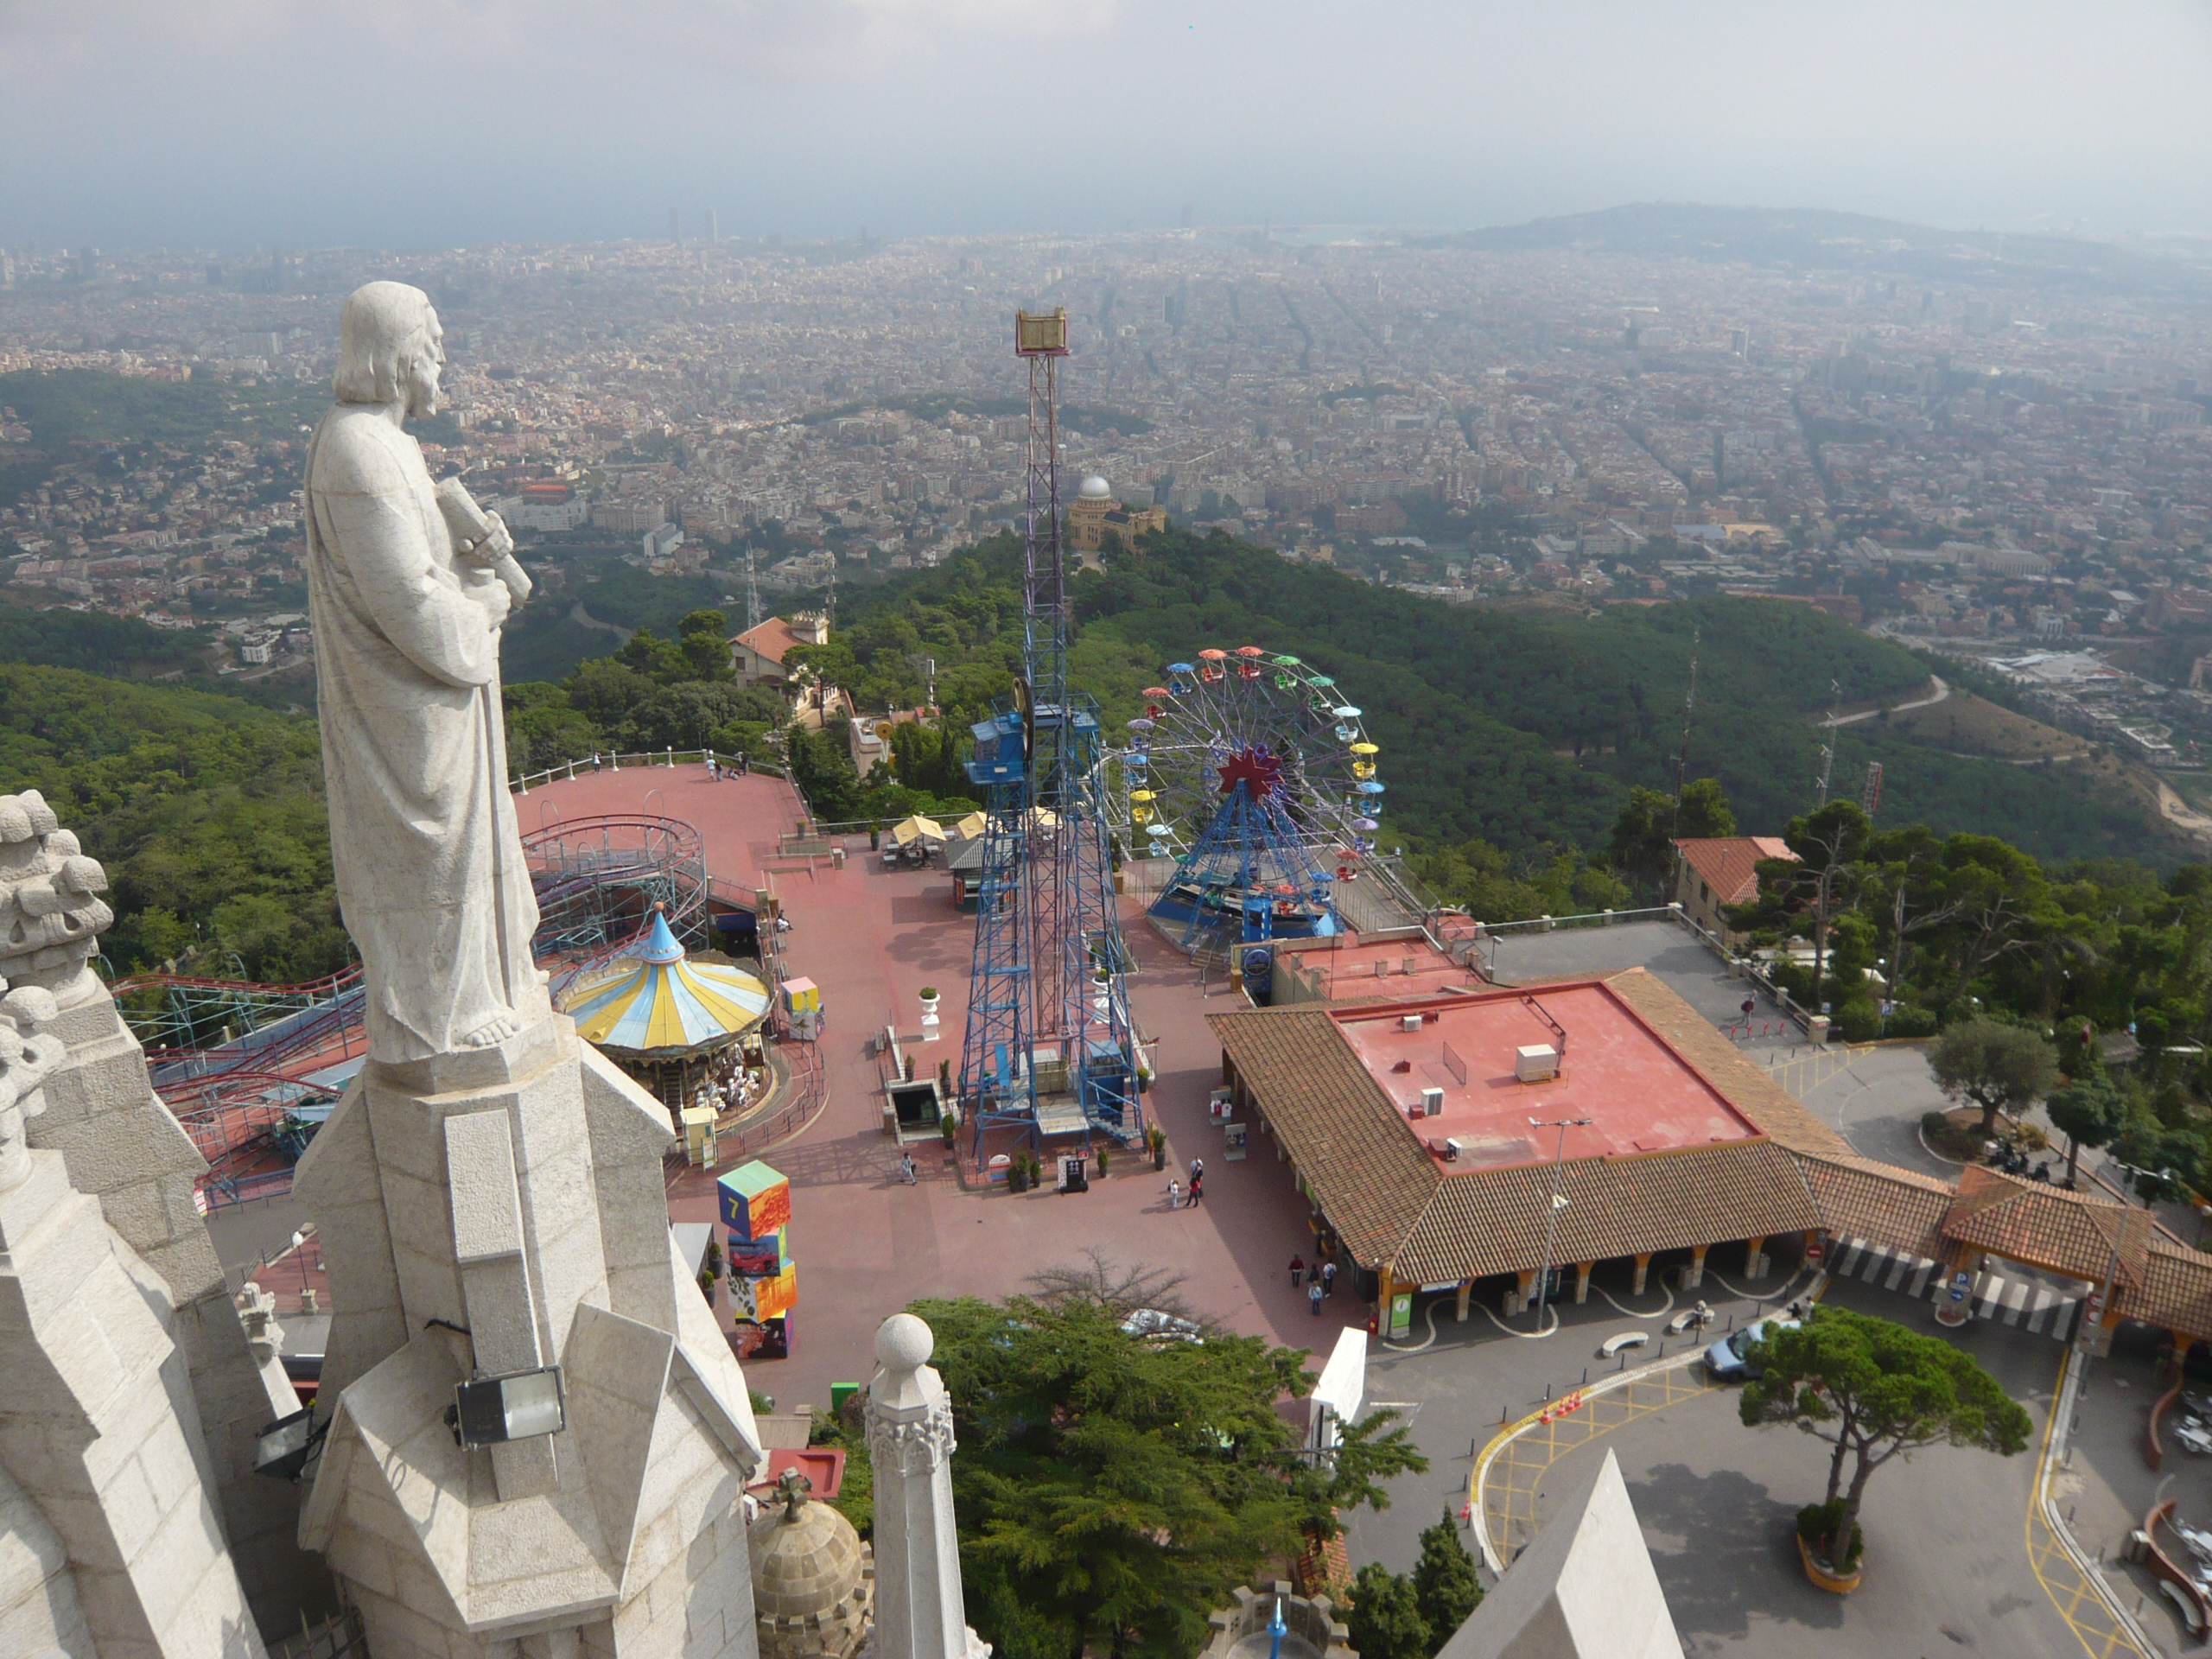 mont-tibidabo Images - Frompo - 1